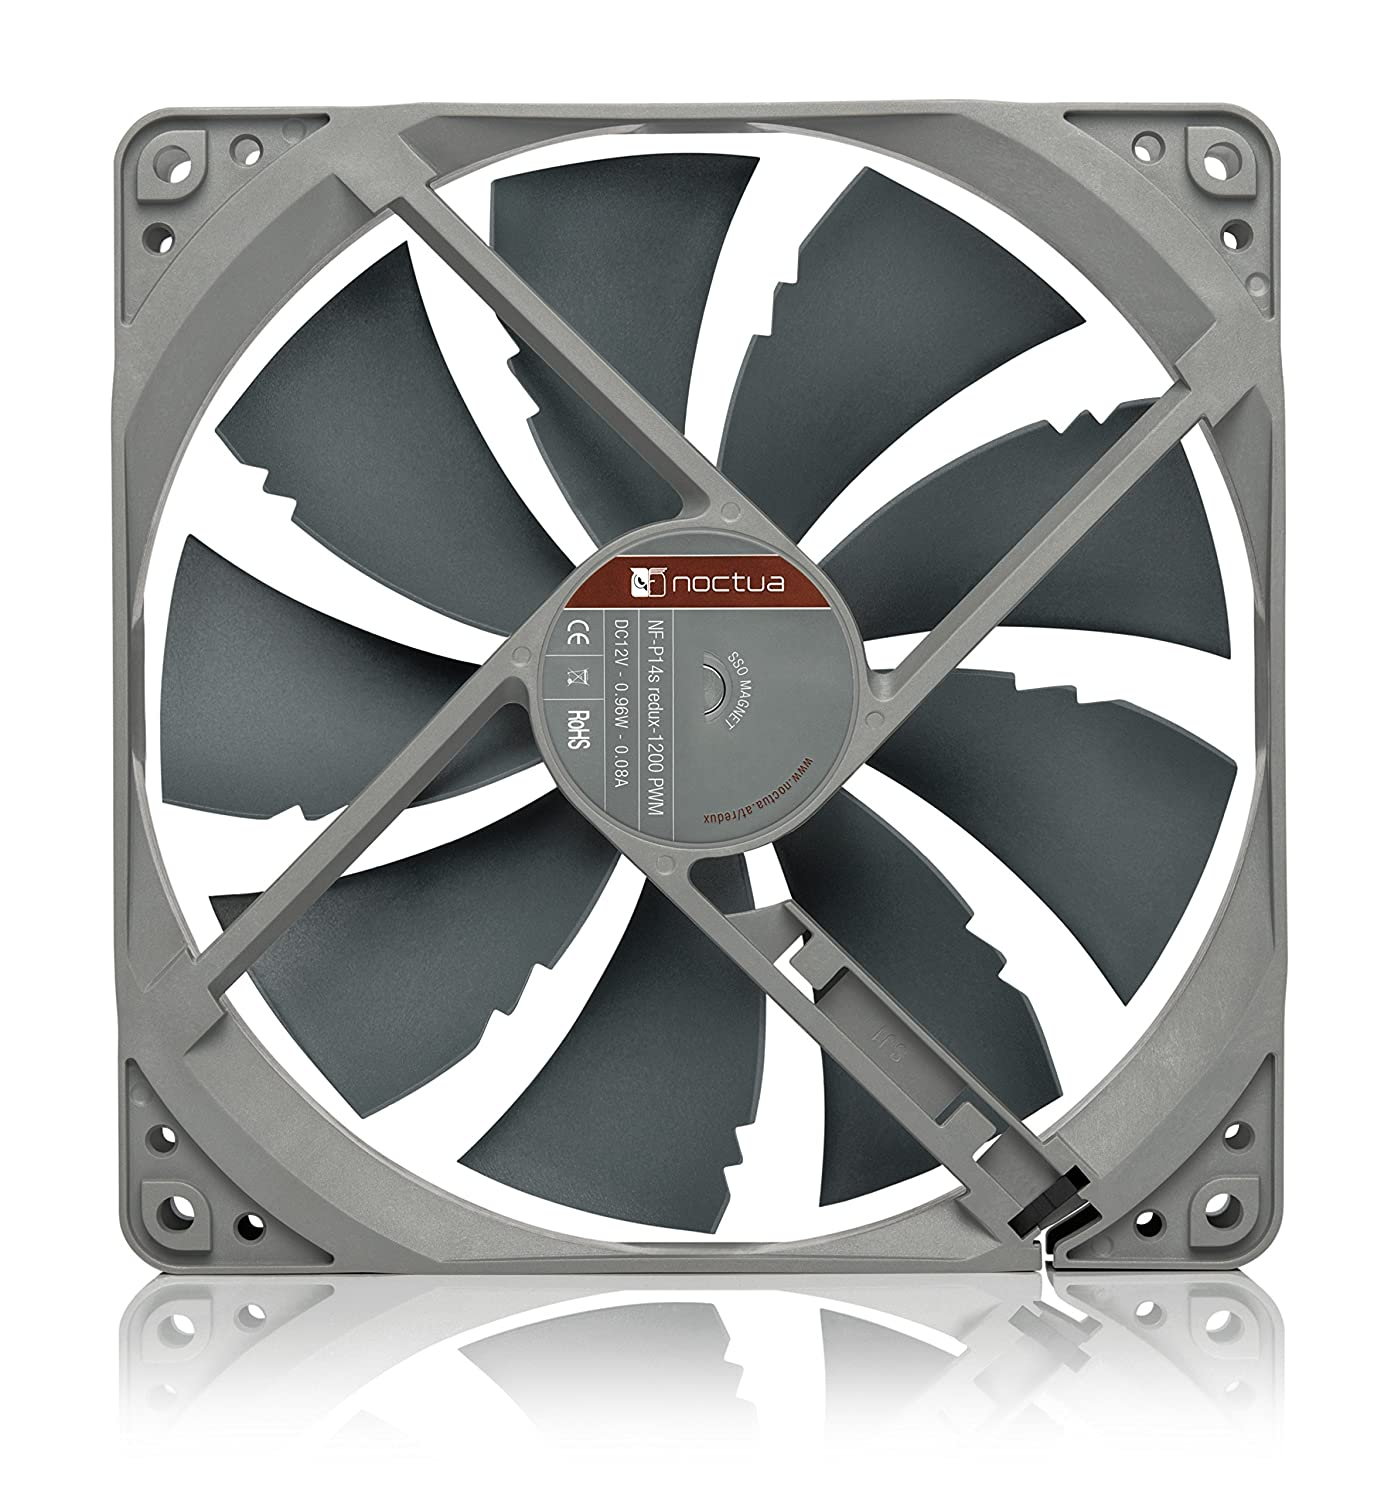 Noctua Sso Bearing Fan Retail Cooling Nf P14s Redux 1200 How To Choose An Electric In 4 Easy Steps Grumpys Performance Pwm Computers Accessories